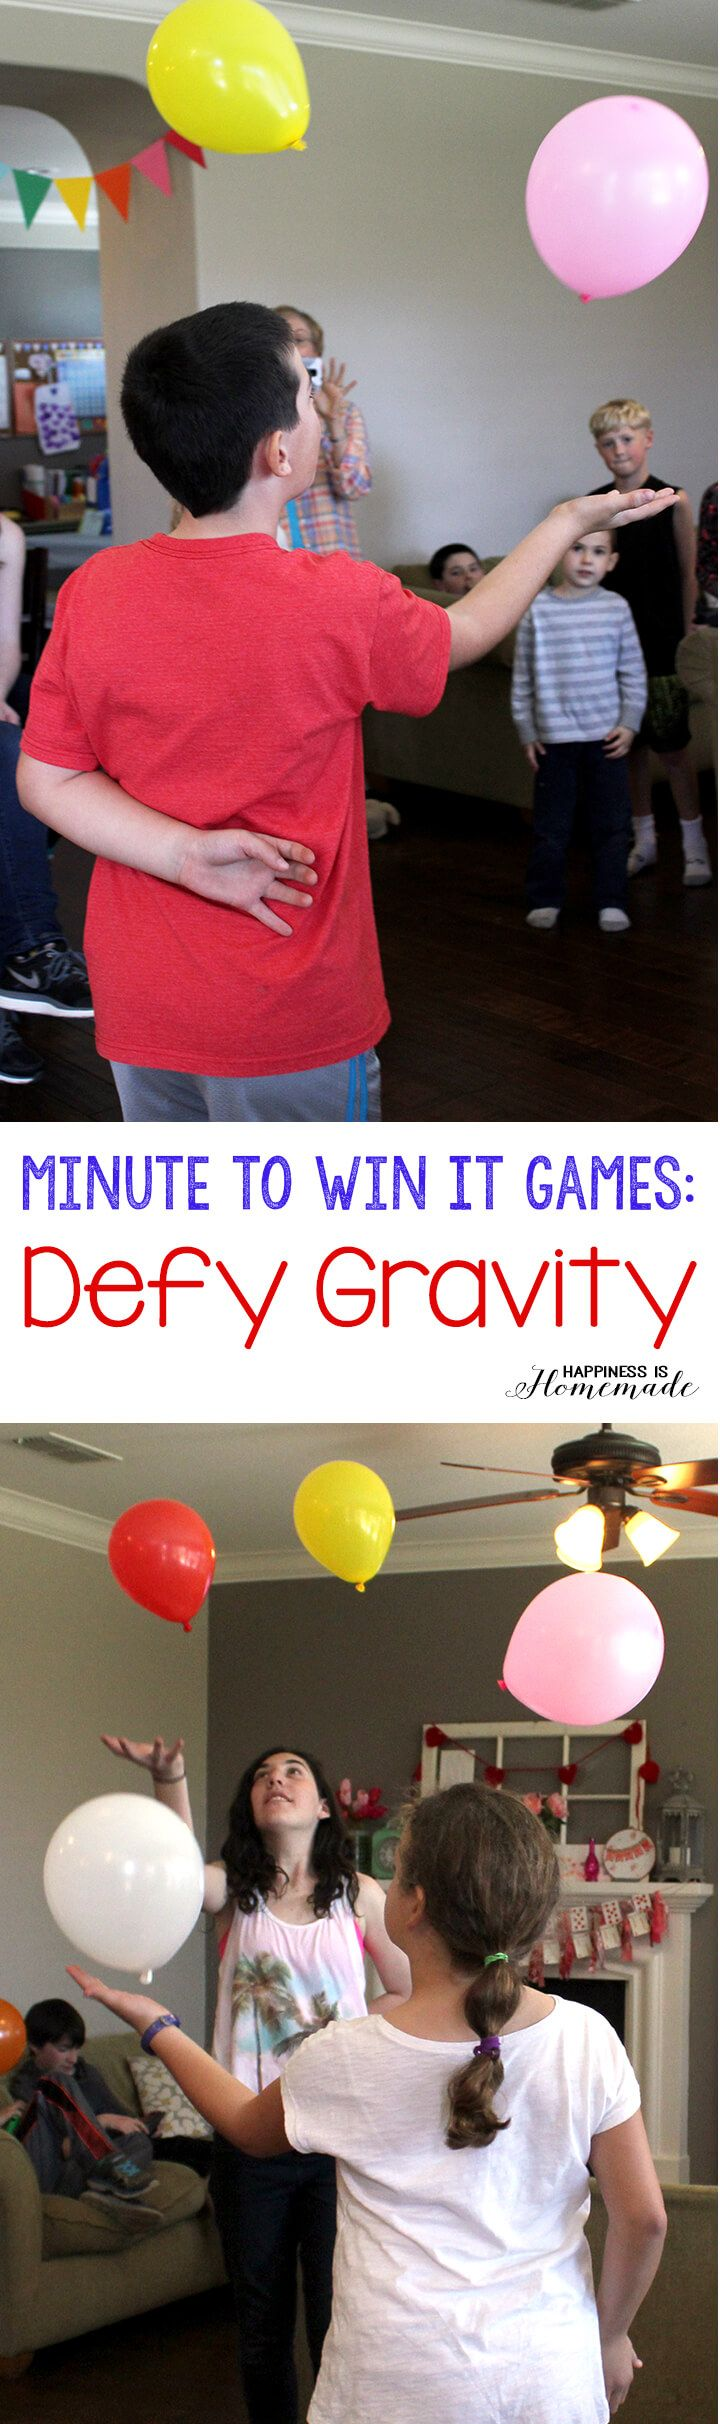 Fun: Keep It Up - Using only one hand, have your group keep two balloons from touching the floor. For a more challenging game, have two balloons per mom (use different colored balloons for each player).